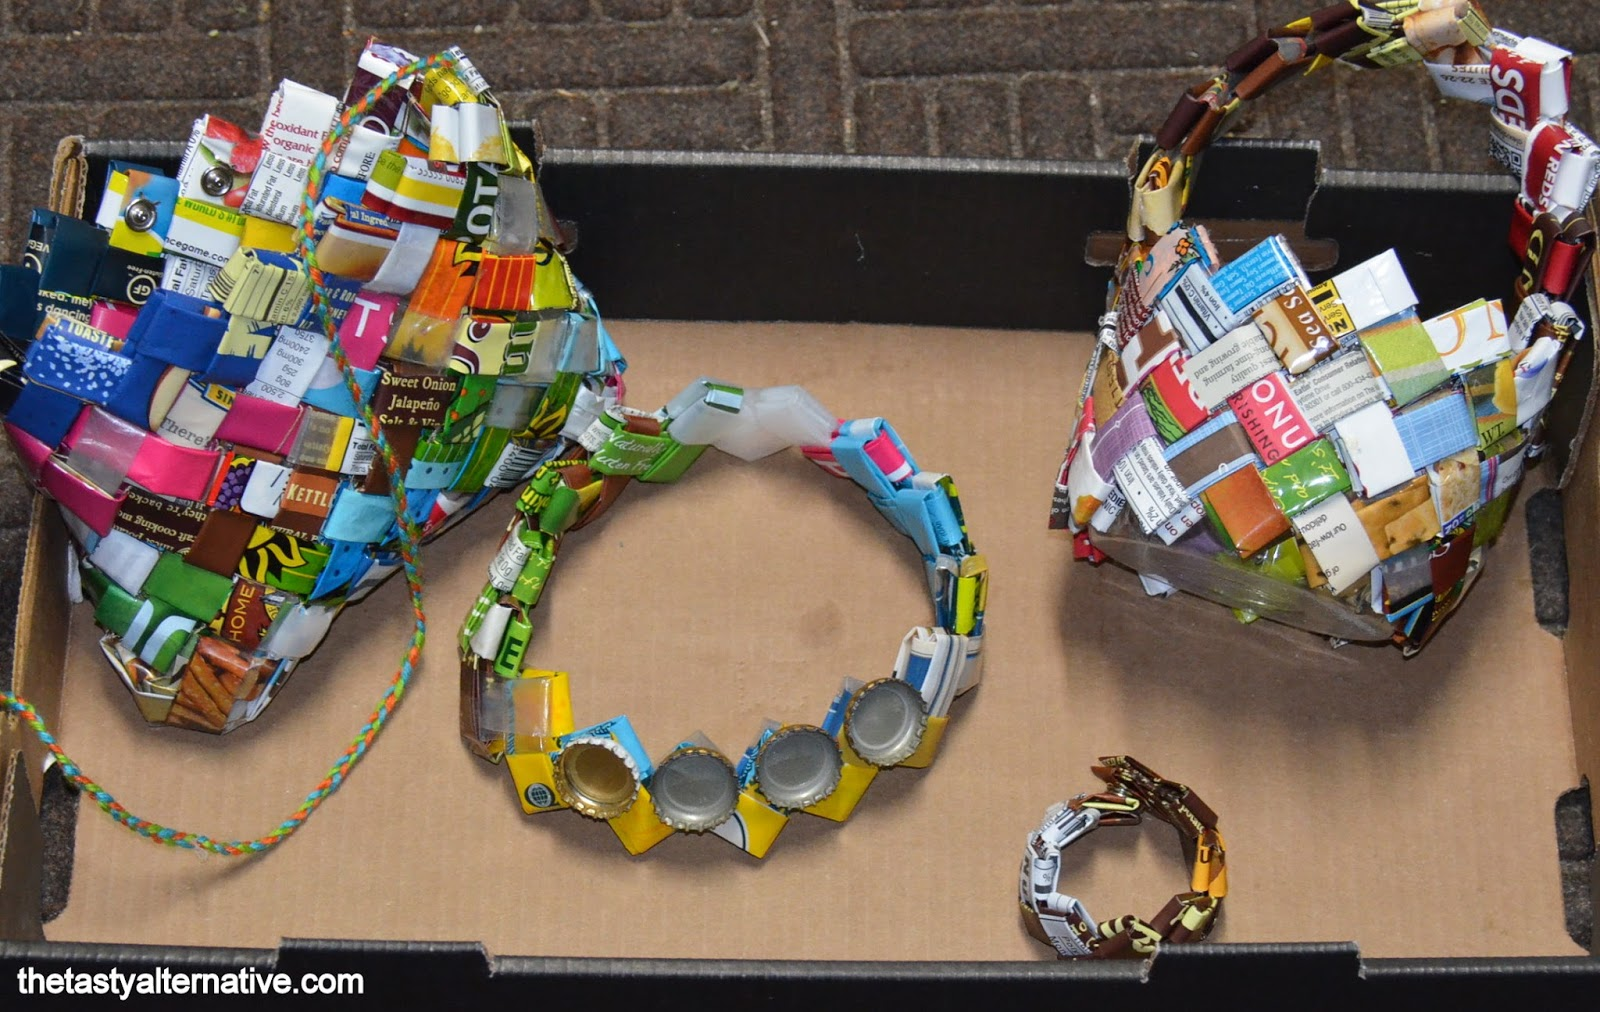 Waste material activity arts and crafts project ideas for Craft ideas out of waste